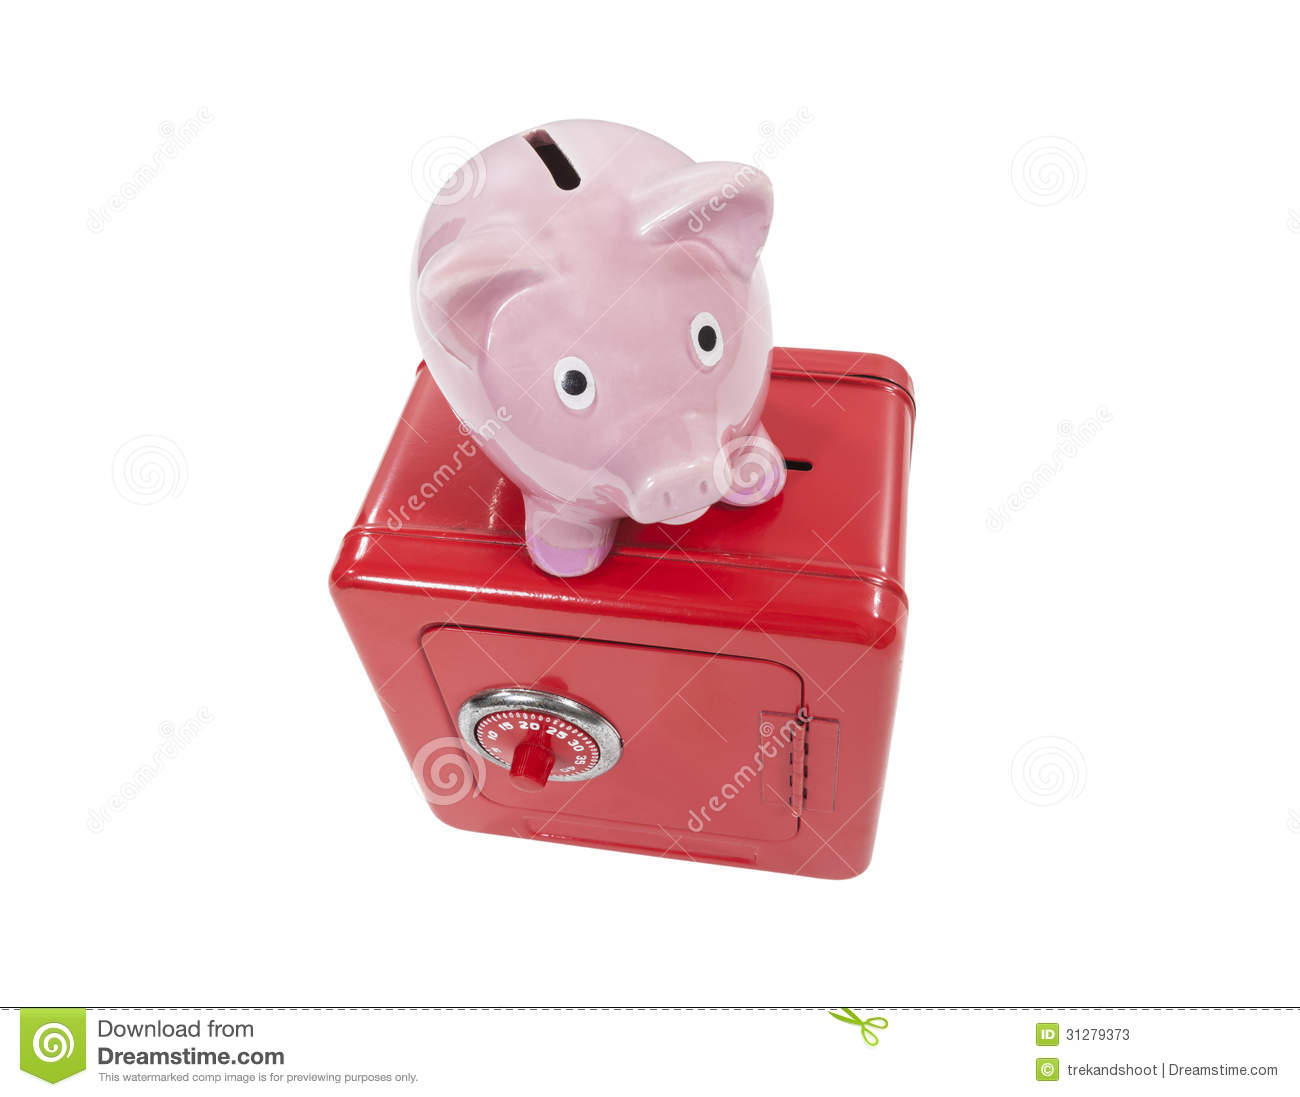 Coin Piggy Bank Toy Vintage Piggy Coin Bank And Toy Safe Isolated Stock Photos